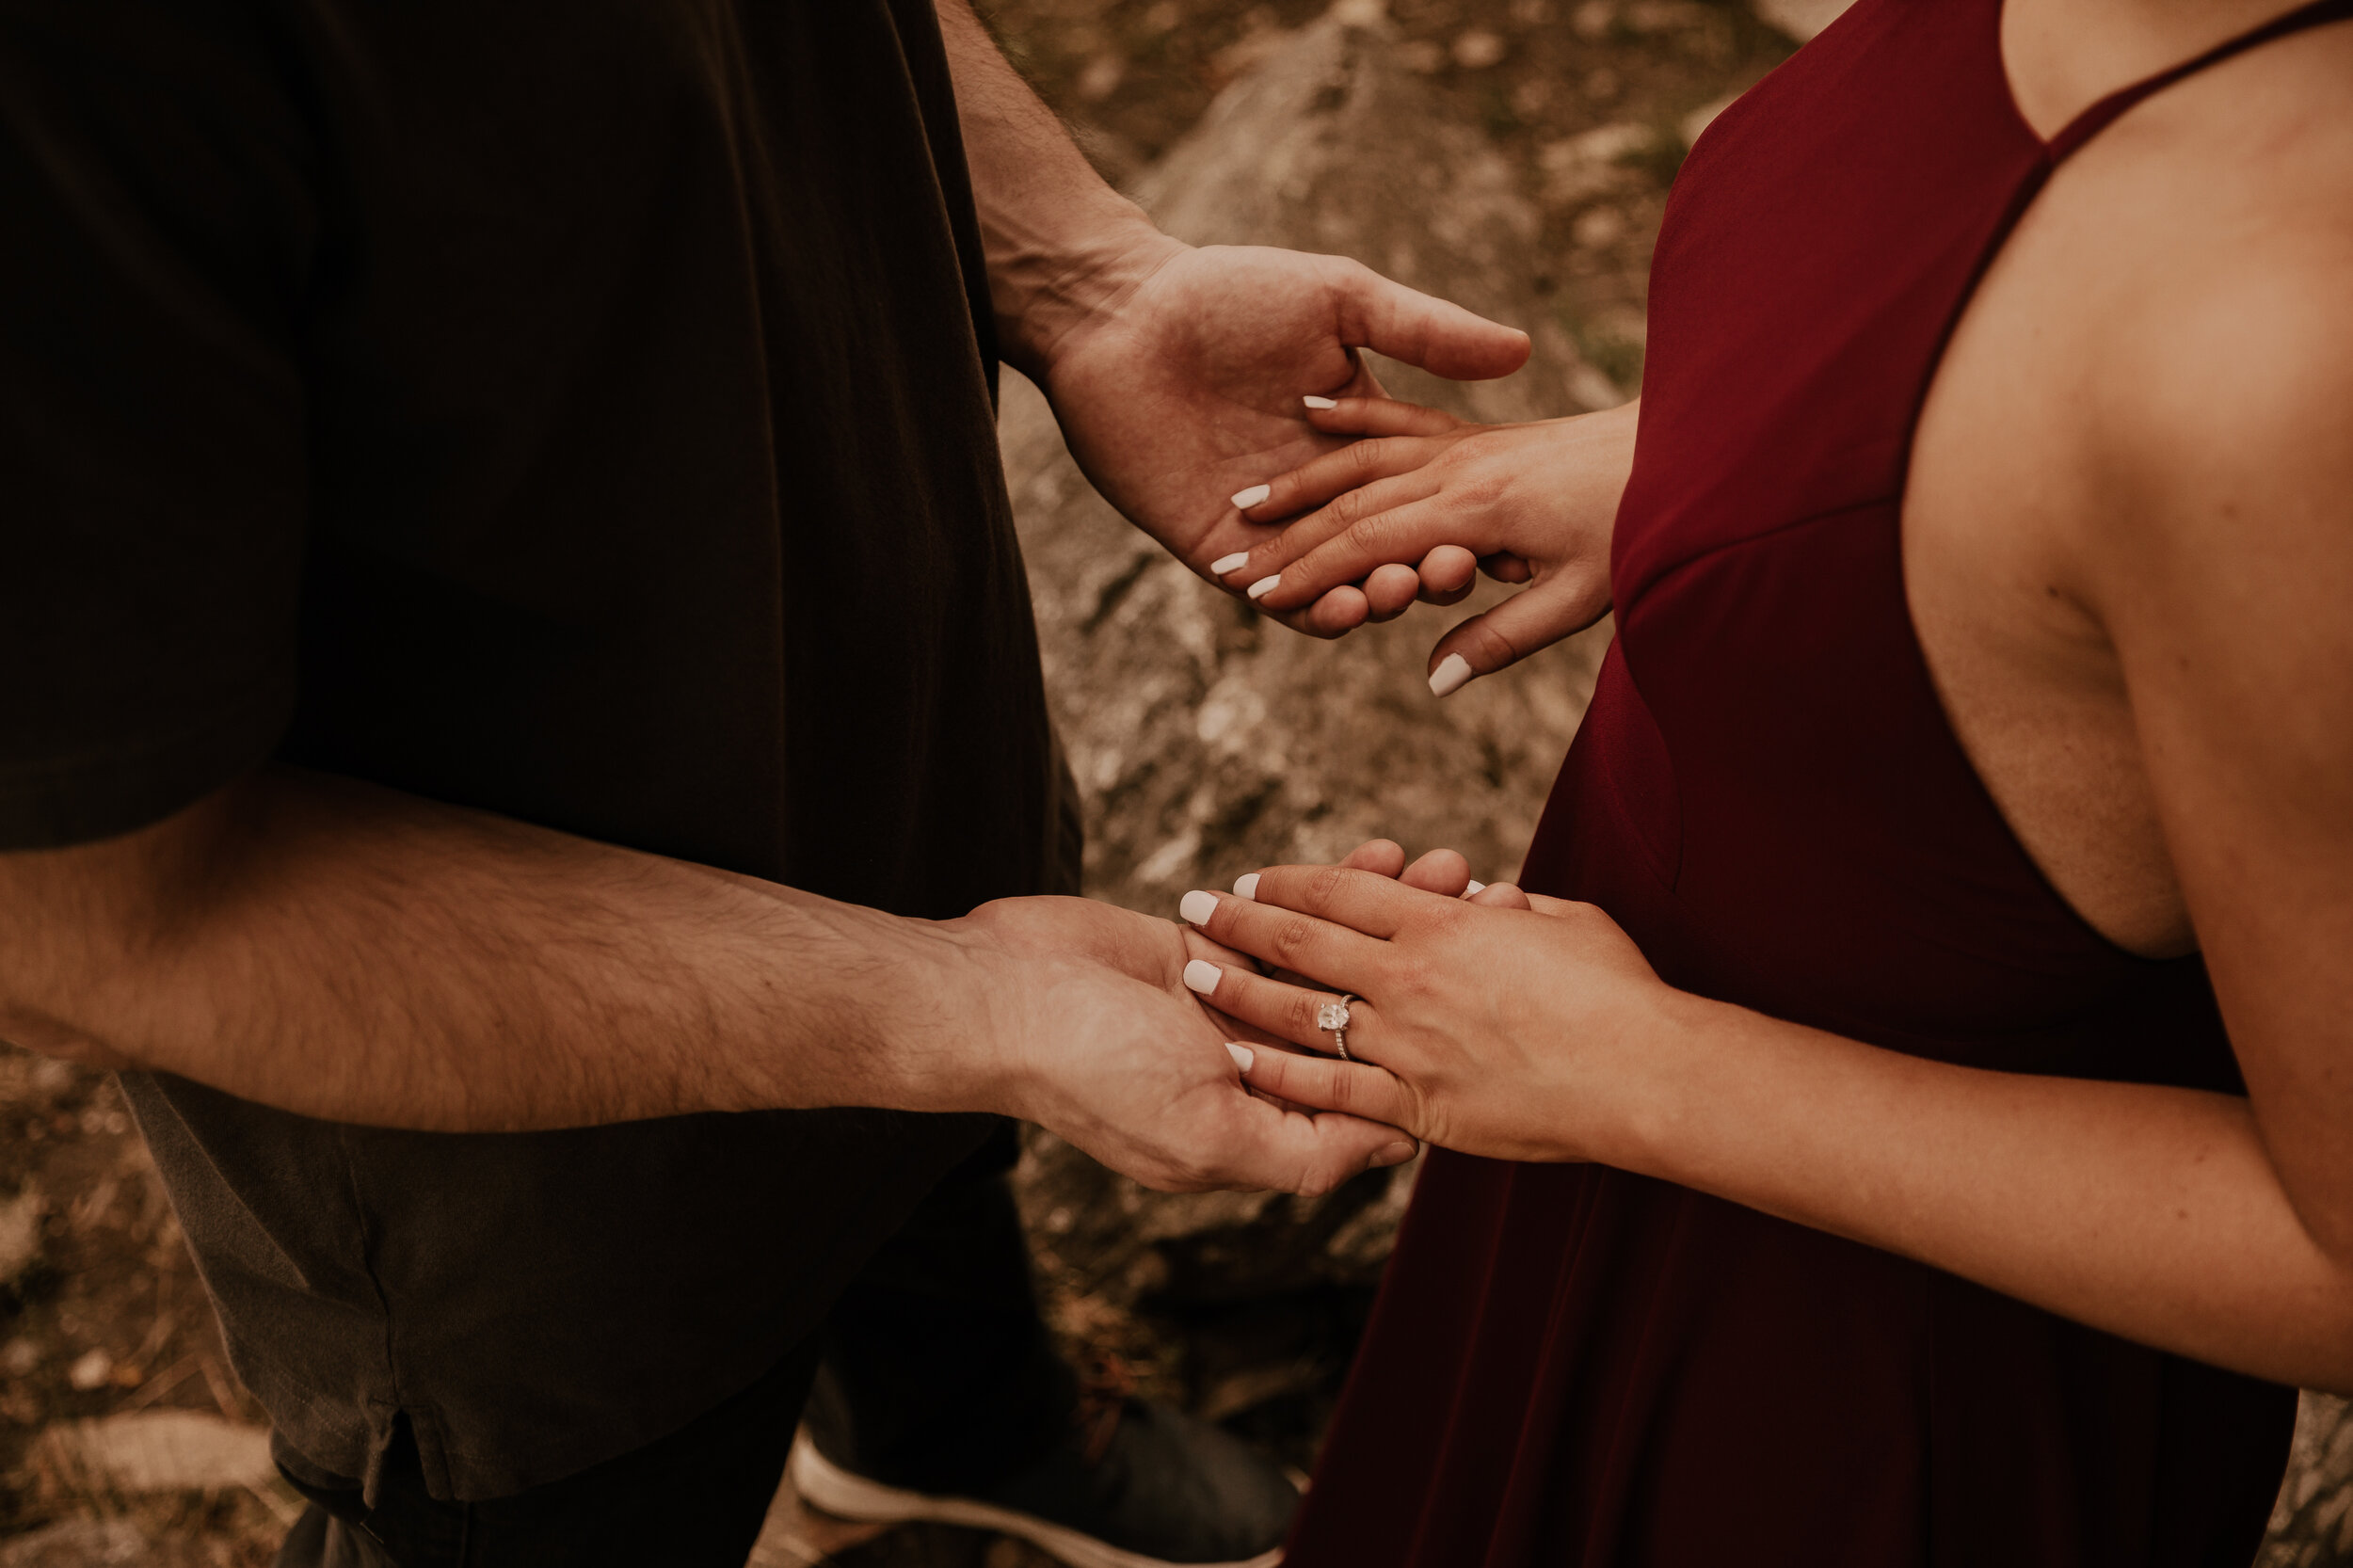 PostFallsRockyMountainEngagement-7507.jpg